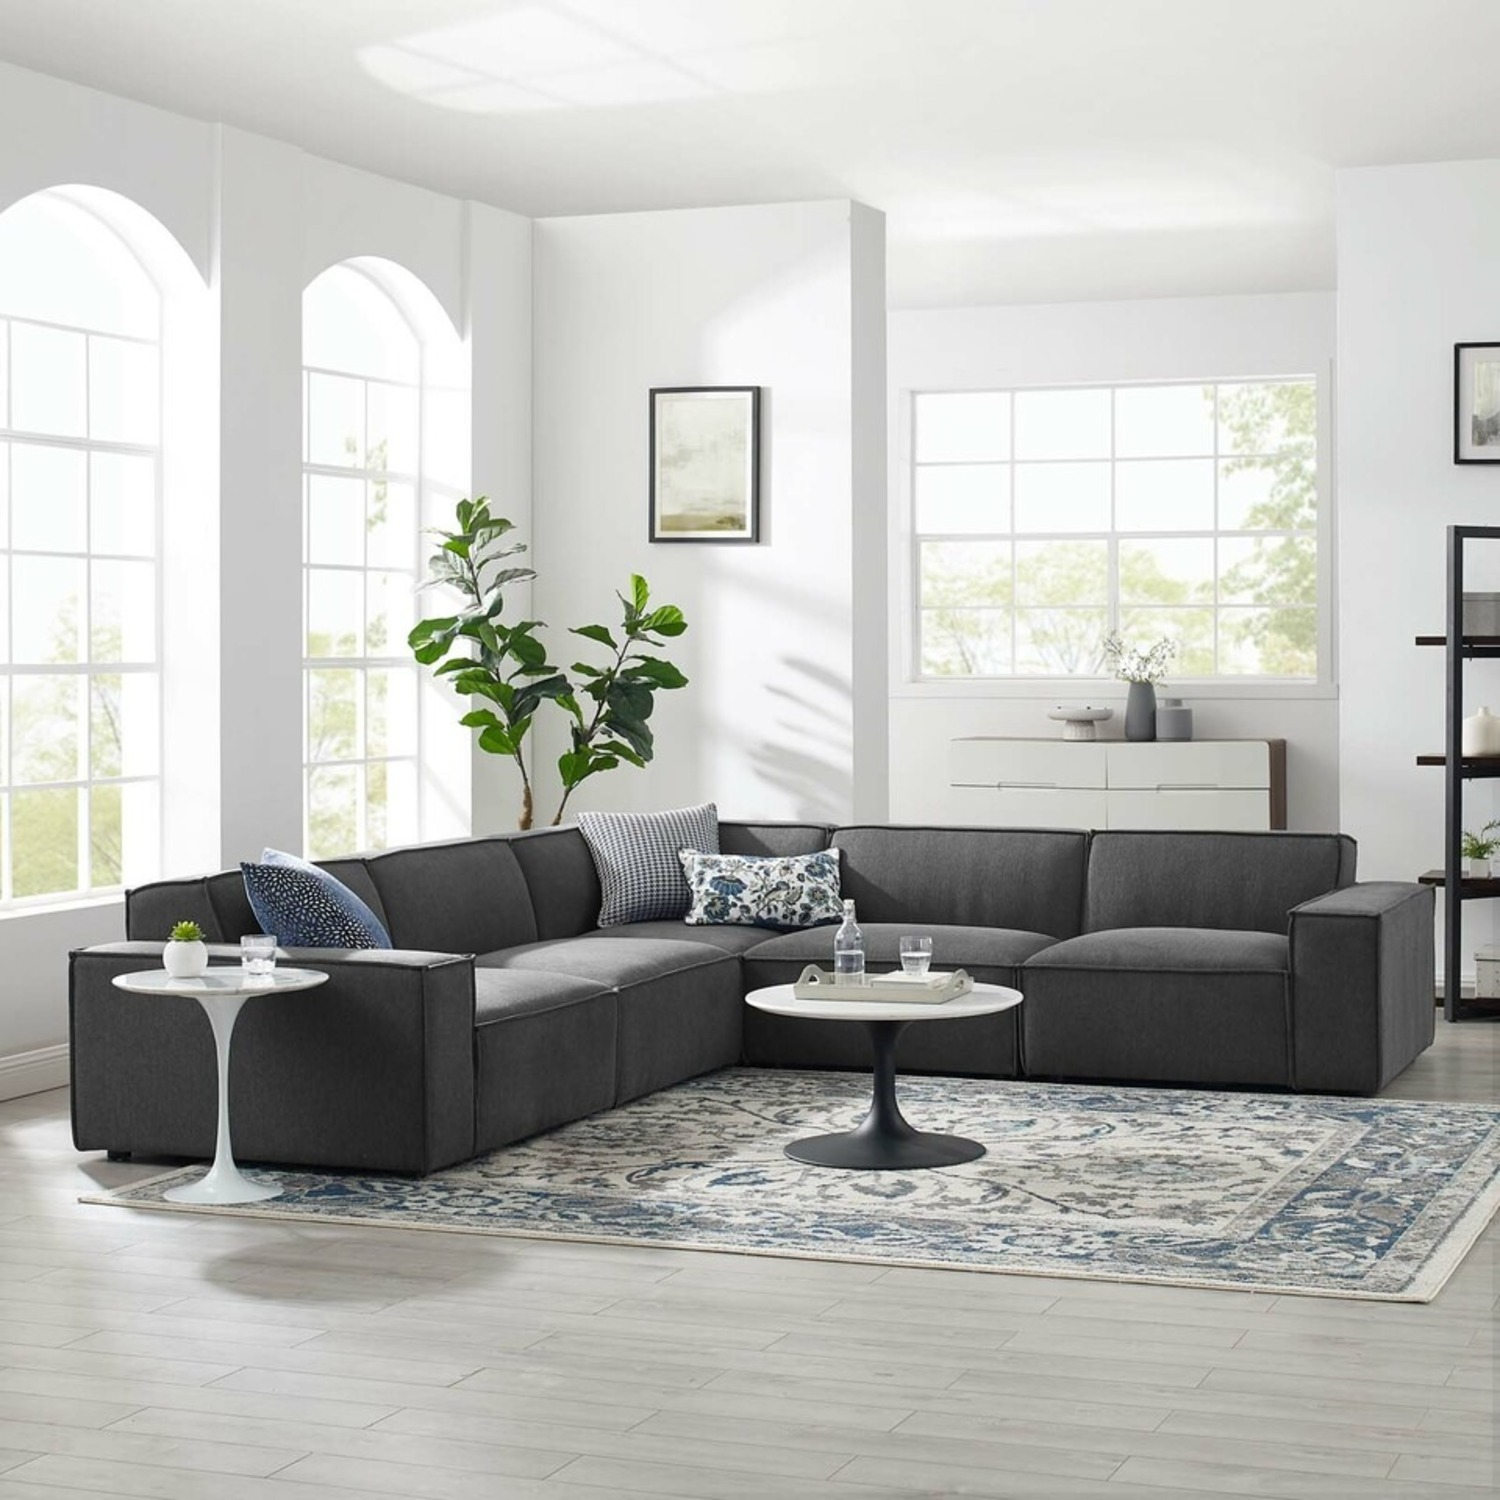 5-Piece Sectional Sofa In CharcoalW/ Piping Detail - image-10